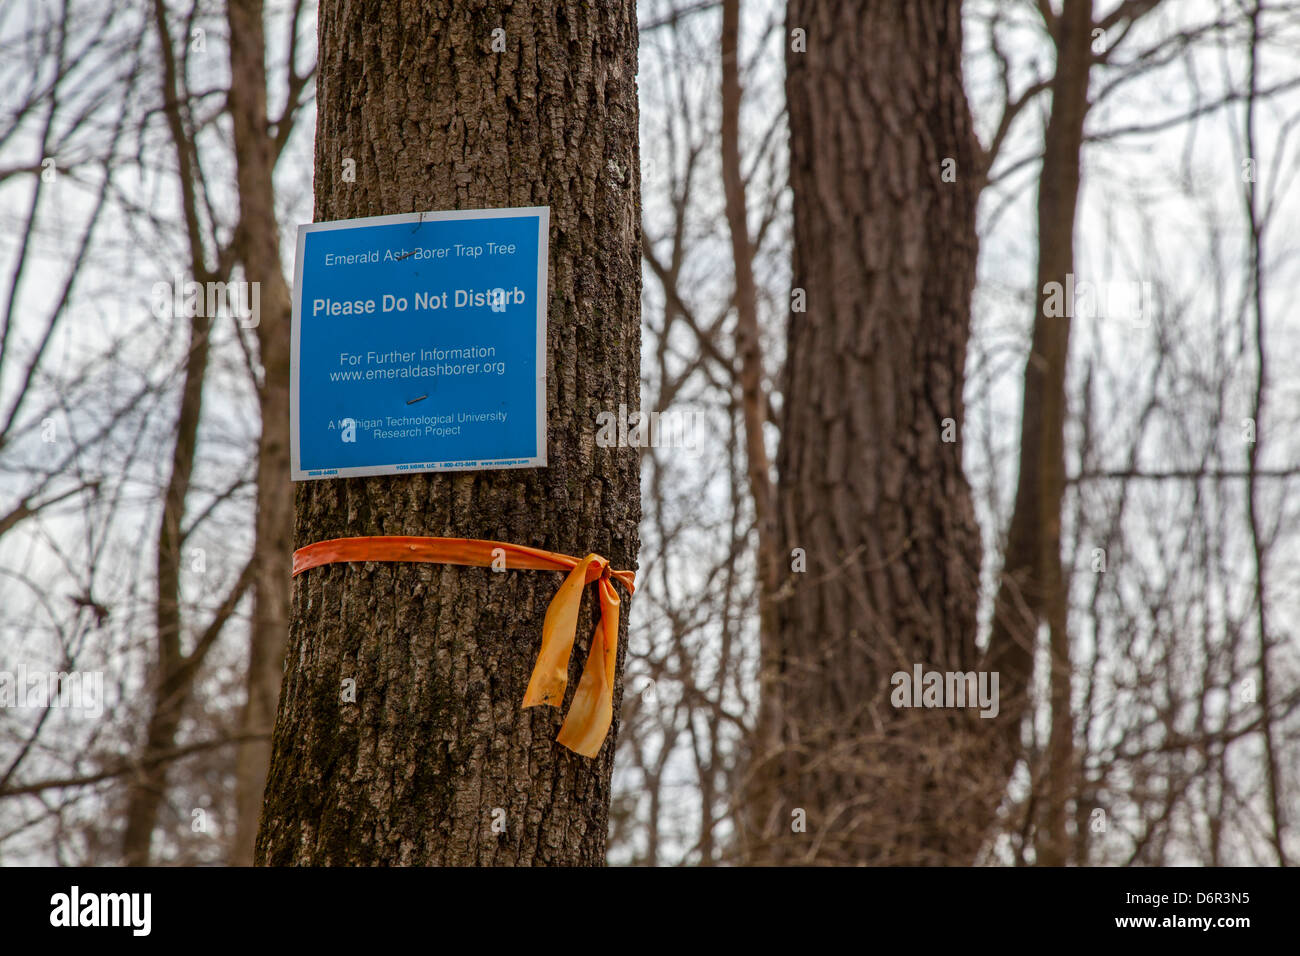 Scientists study spread of the invasive emerald ash borer - Stock Image